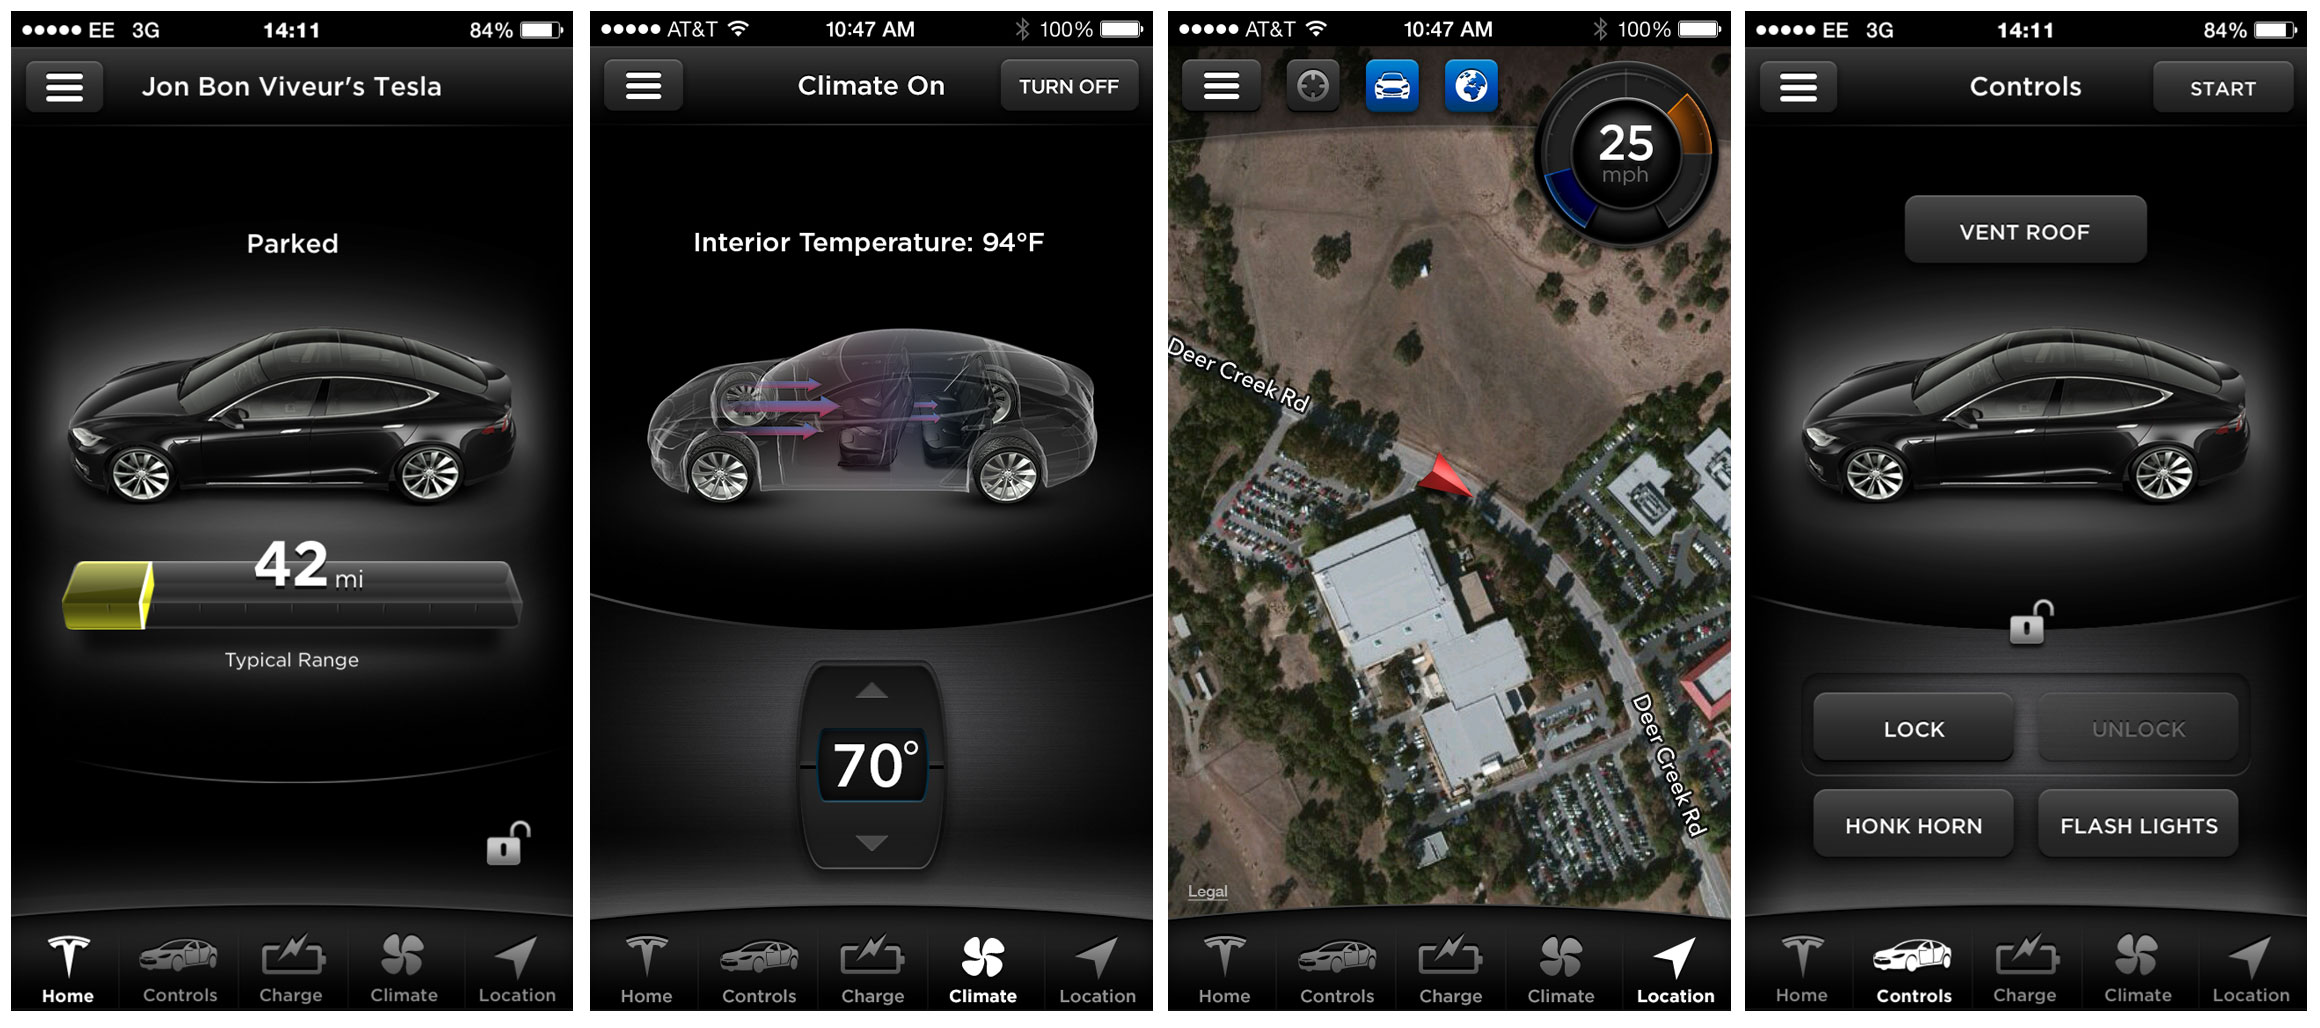 The Tesla Model S has an app that runs on the iPhone